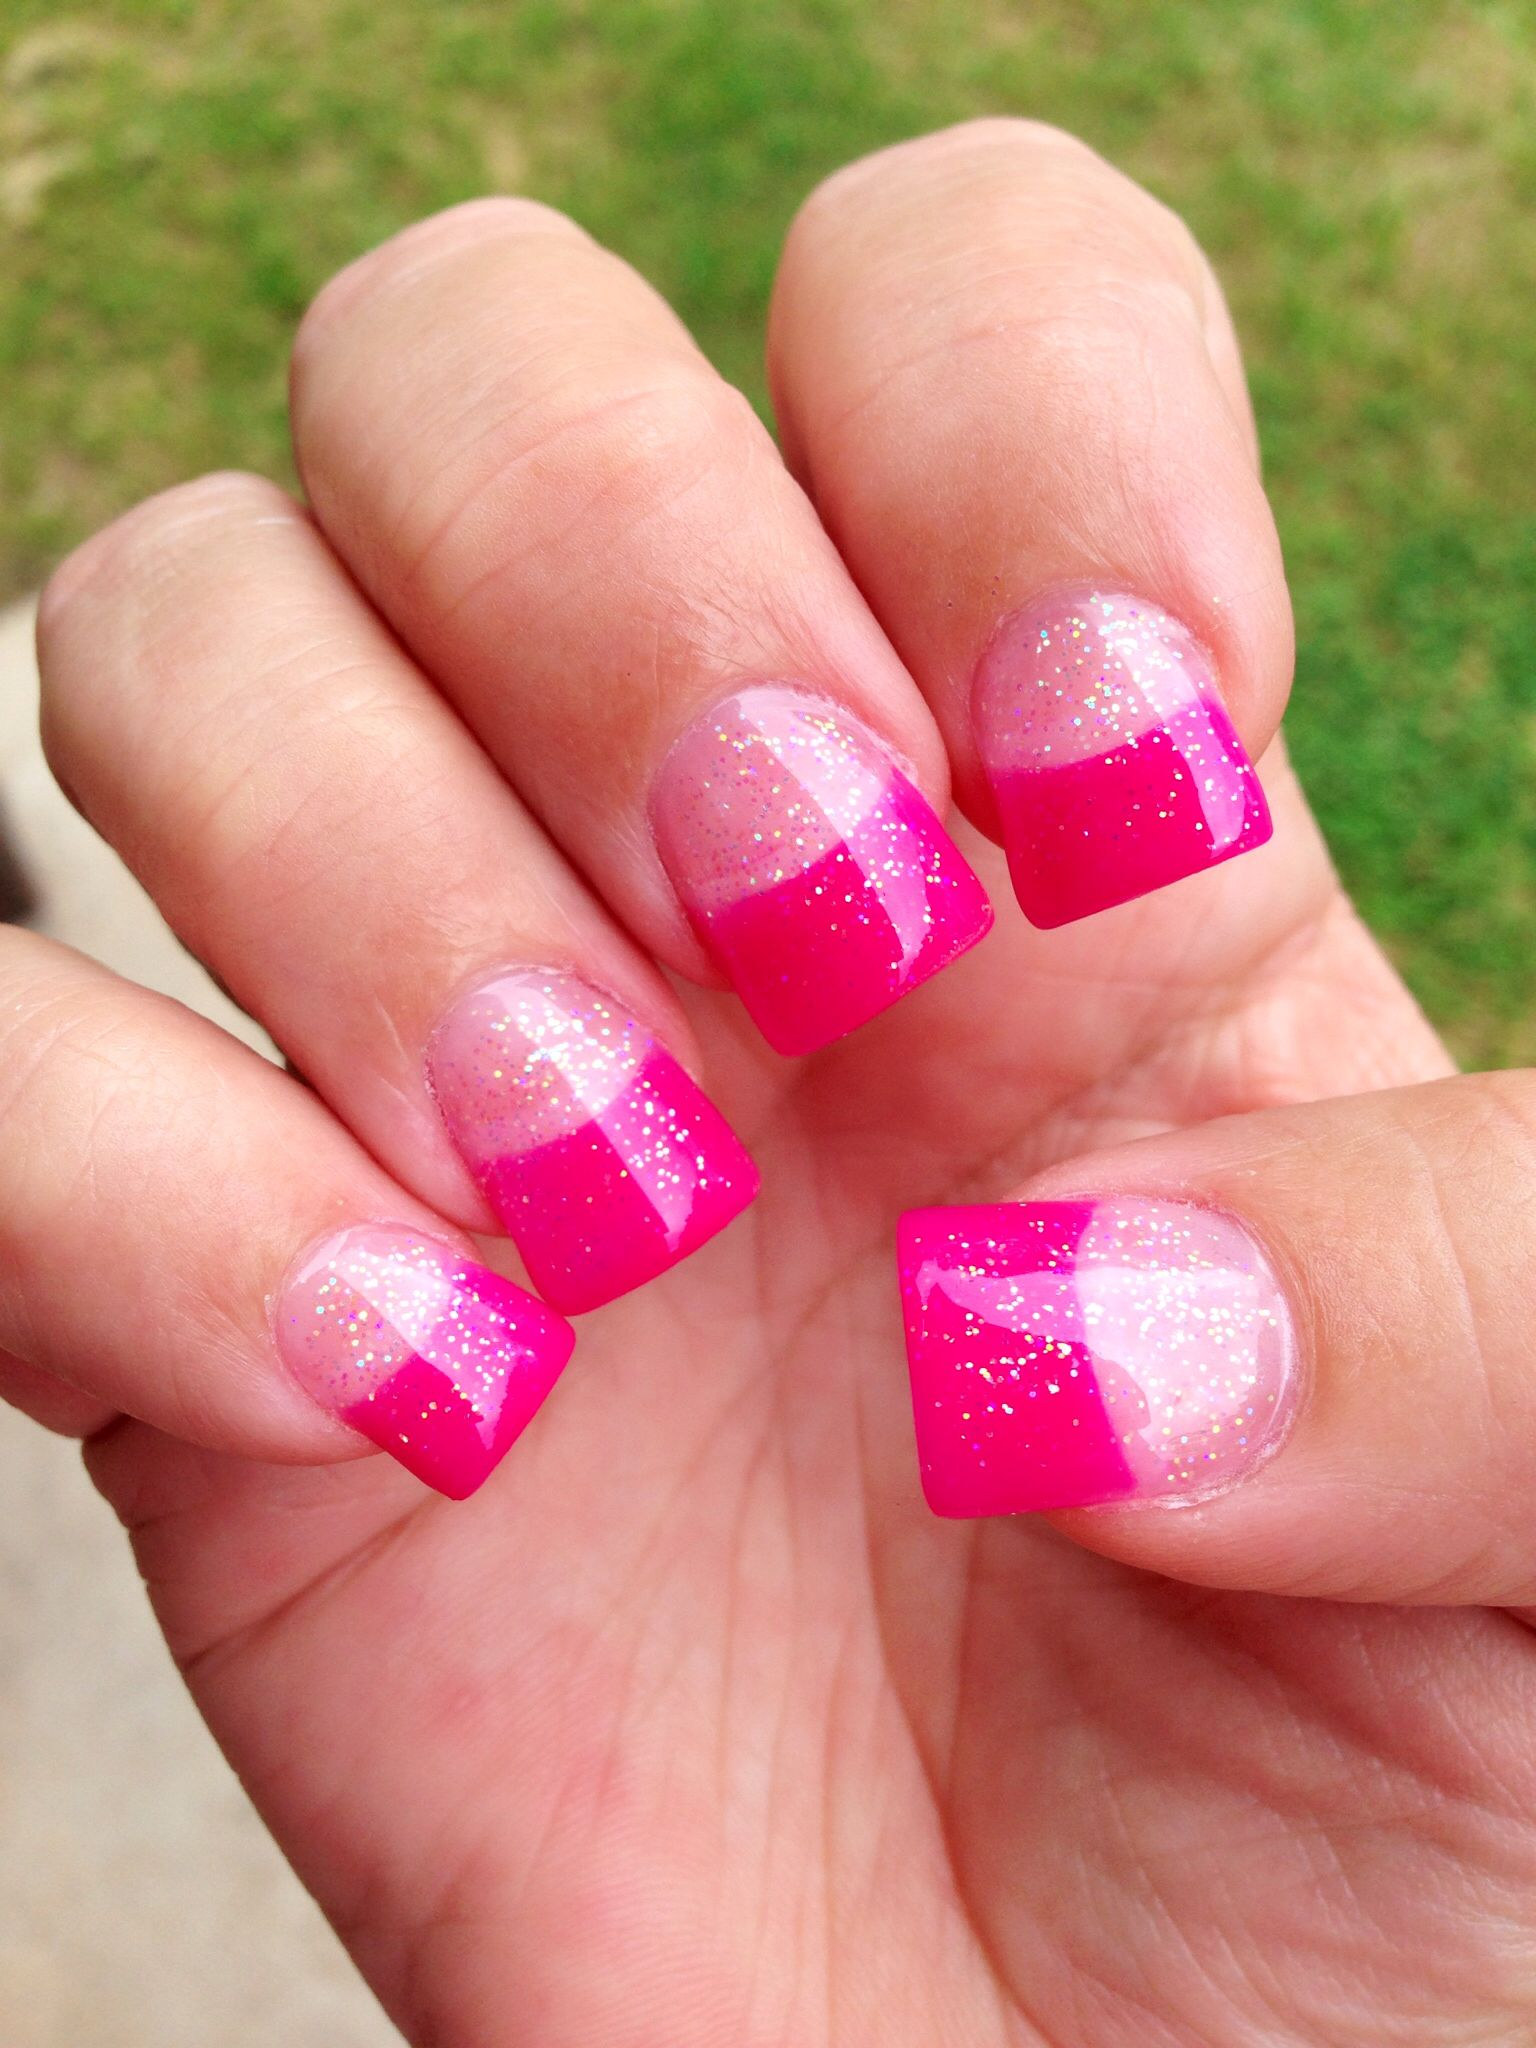 Pink w glitter solar nails hair beauty pinterest solar pink w glitter solar nails prinsesfo Choice Image